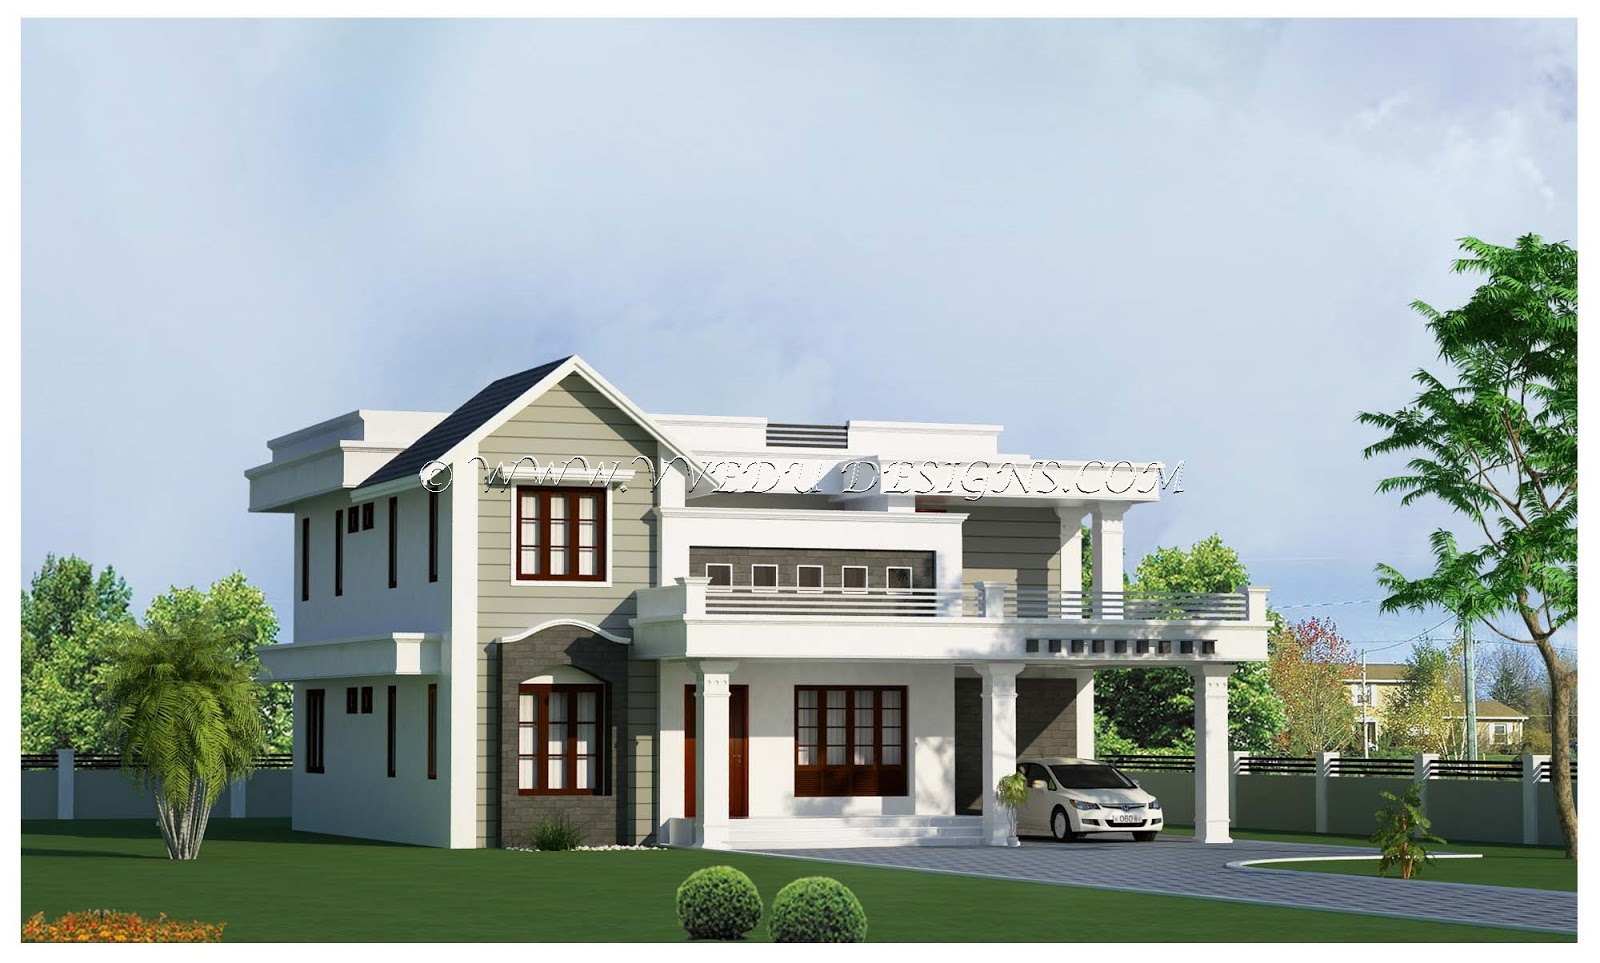 Veedu designs veedu designs kerala home design by navaz ak for Designers homes